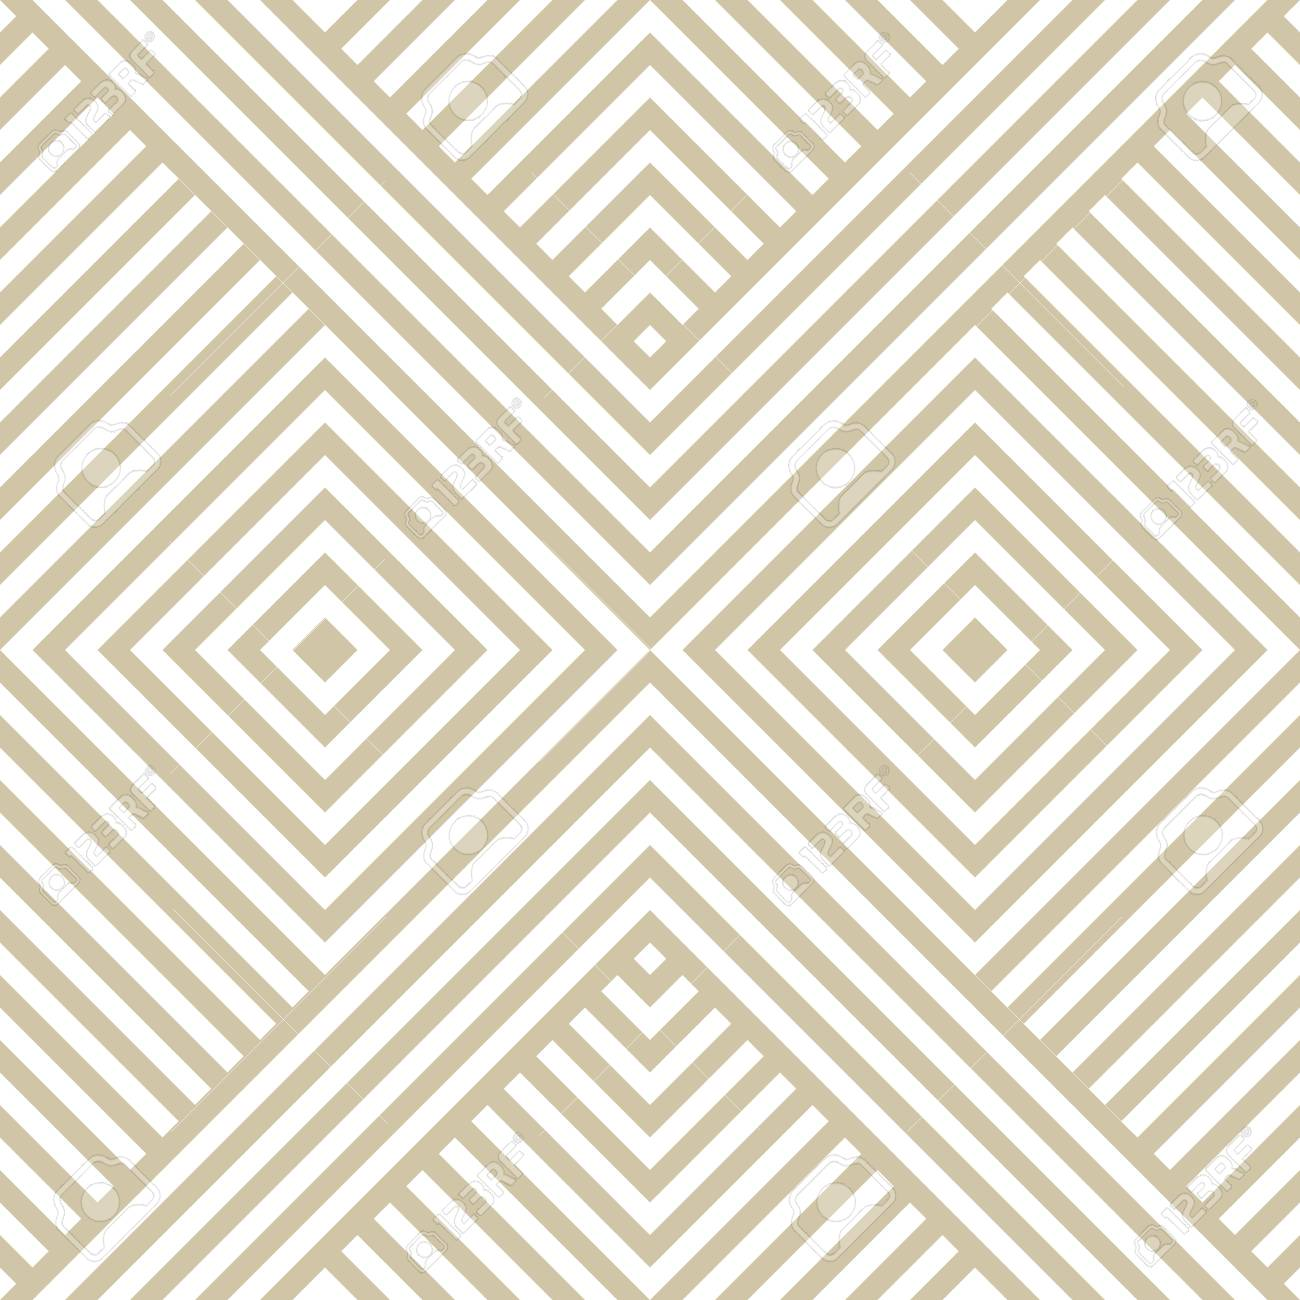 Vector Golden Geometric Lines Pattern Luxury Linear Background With Diagonal Stripes Squares Chevron Abstract White And Beige Seamless Texture Modern Ornamental Design For Decor Prints Carpet Royalty Free Cliparts Vectors And Stock